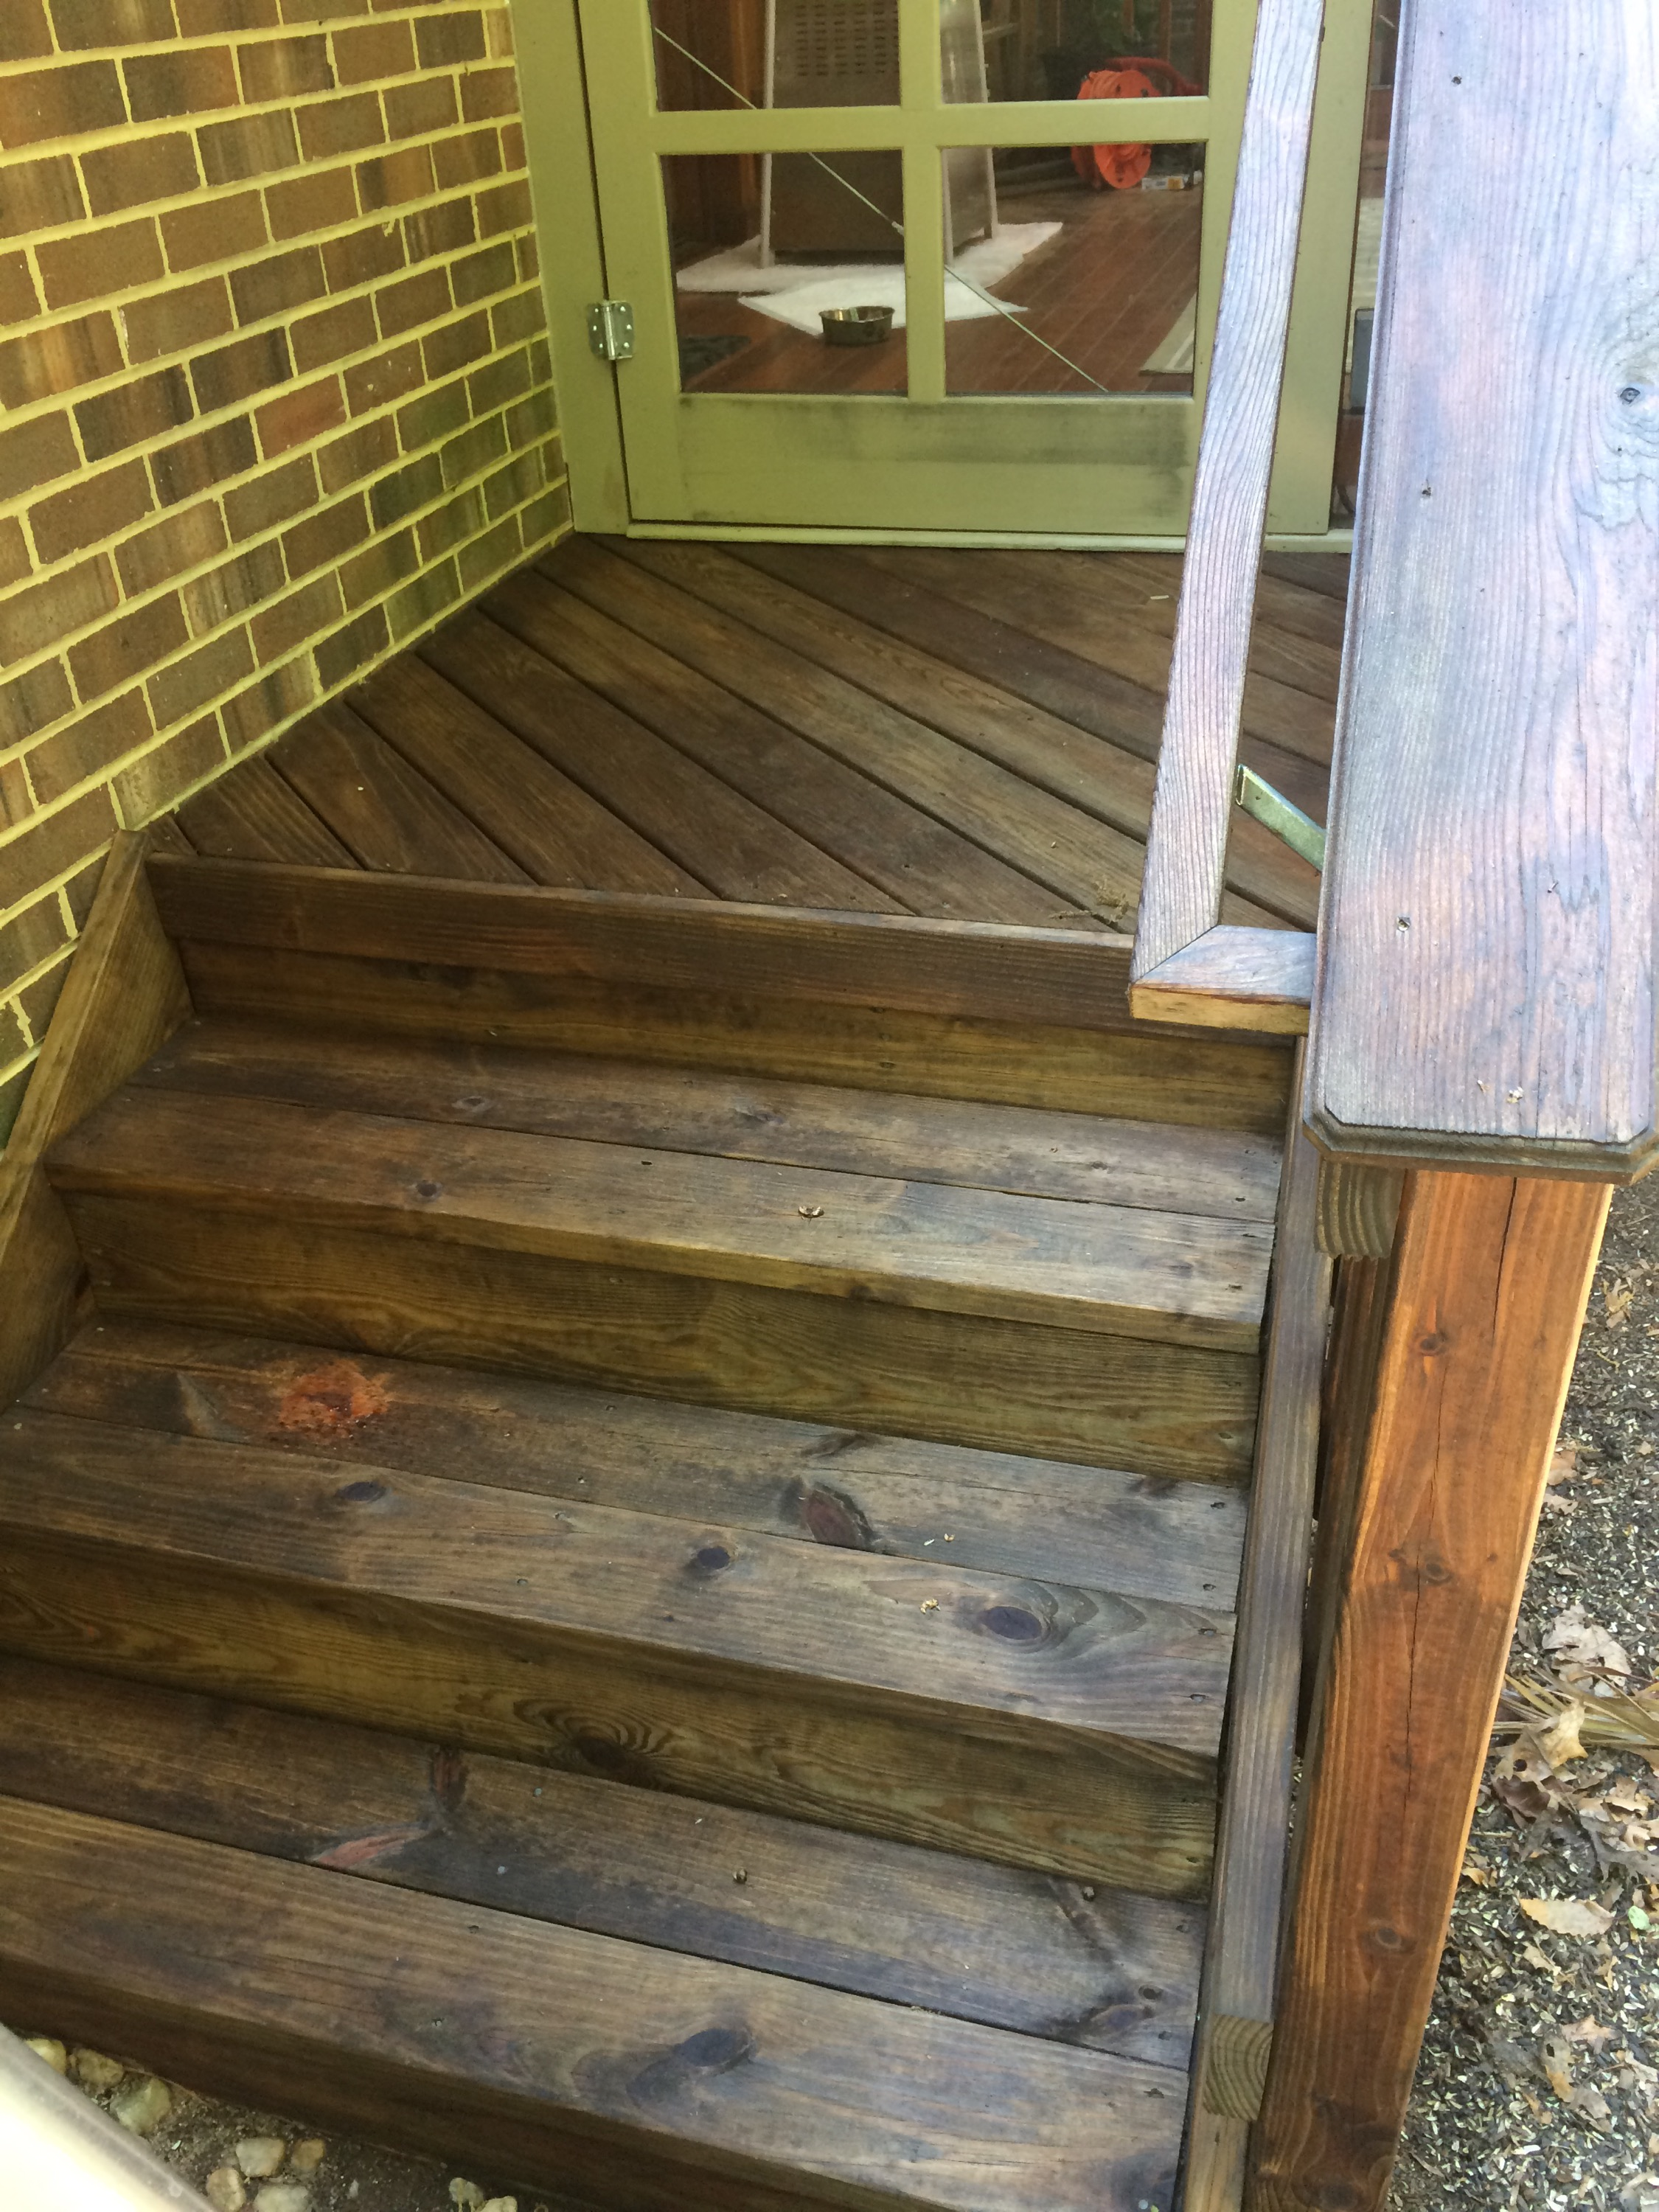 Refinishing Decks With Pine Tar And Raw Linseed Oil Is A